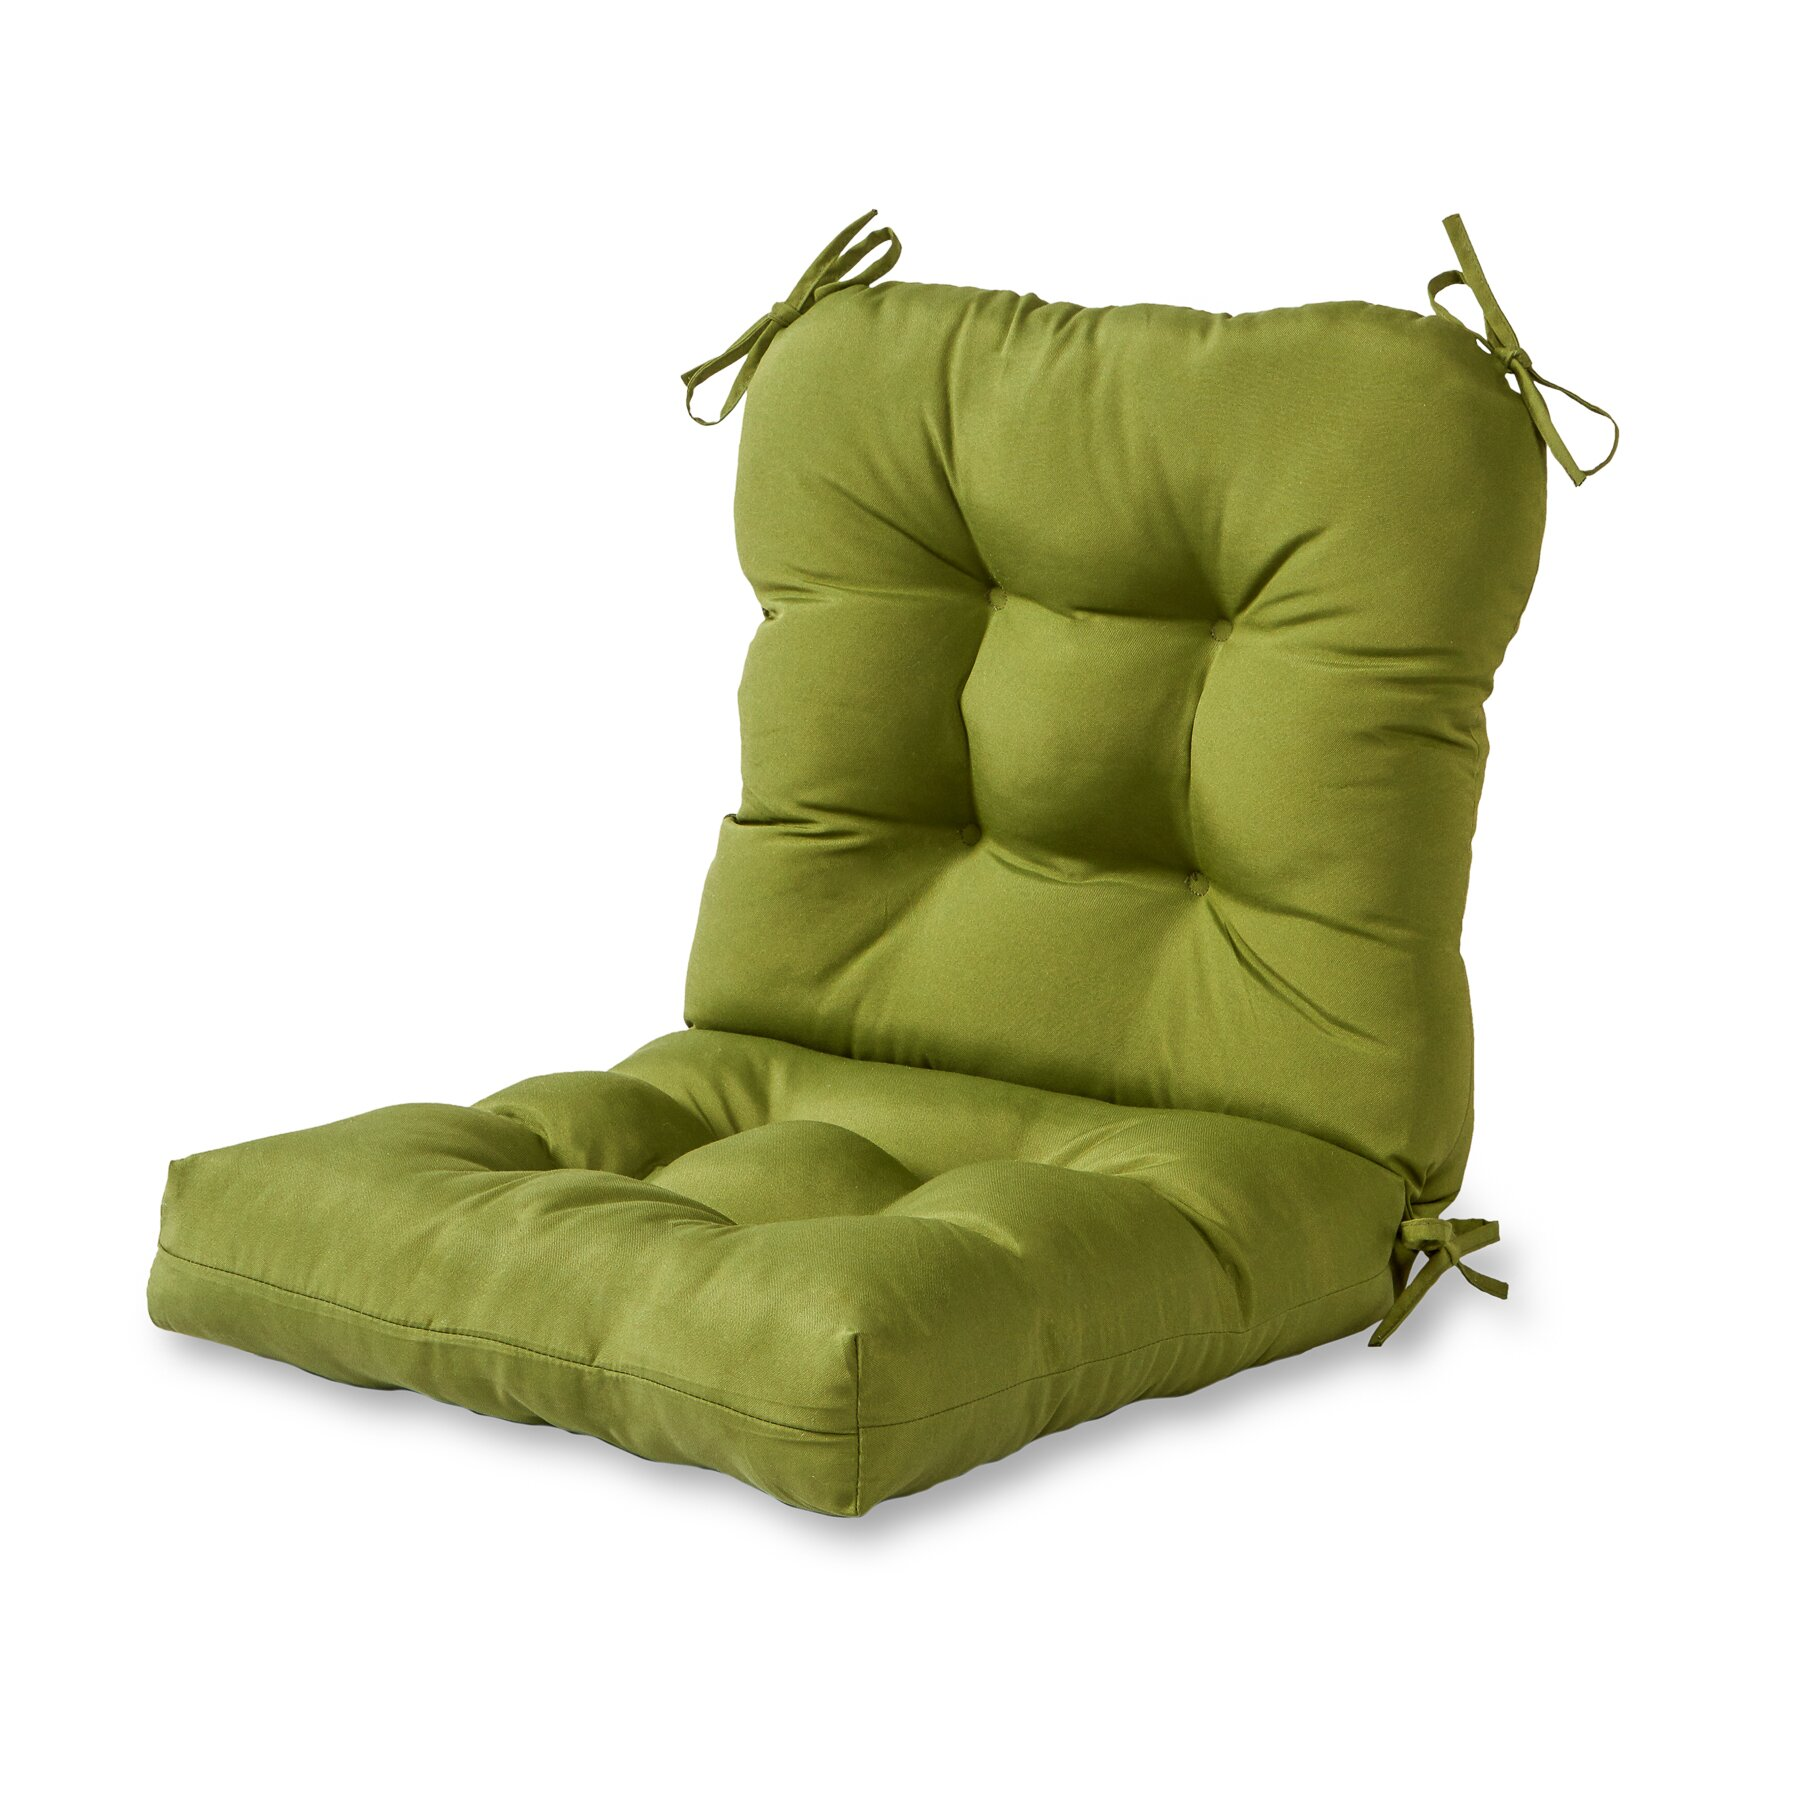 Greendale Home Fashions Outdoor Lounge Chair Cushion ...